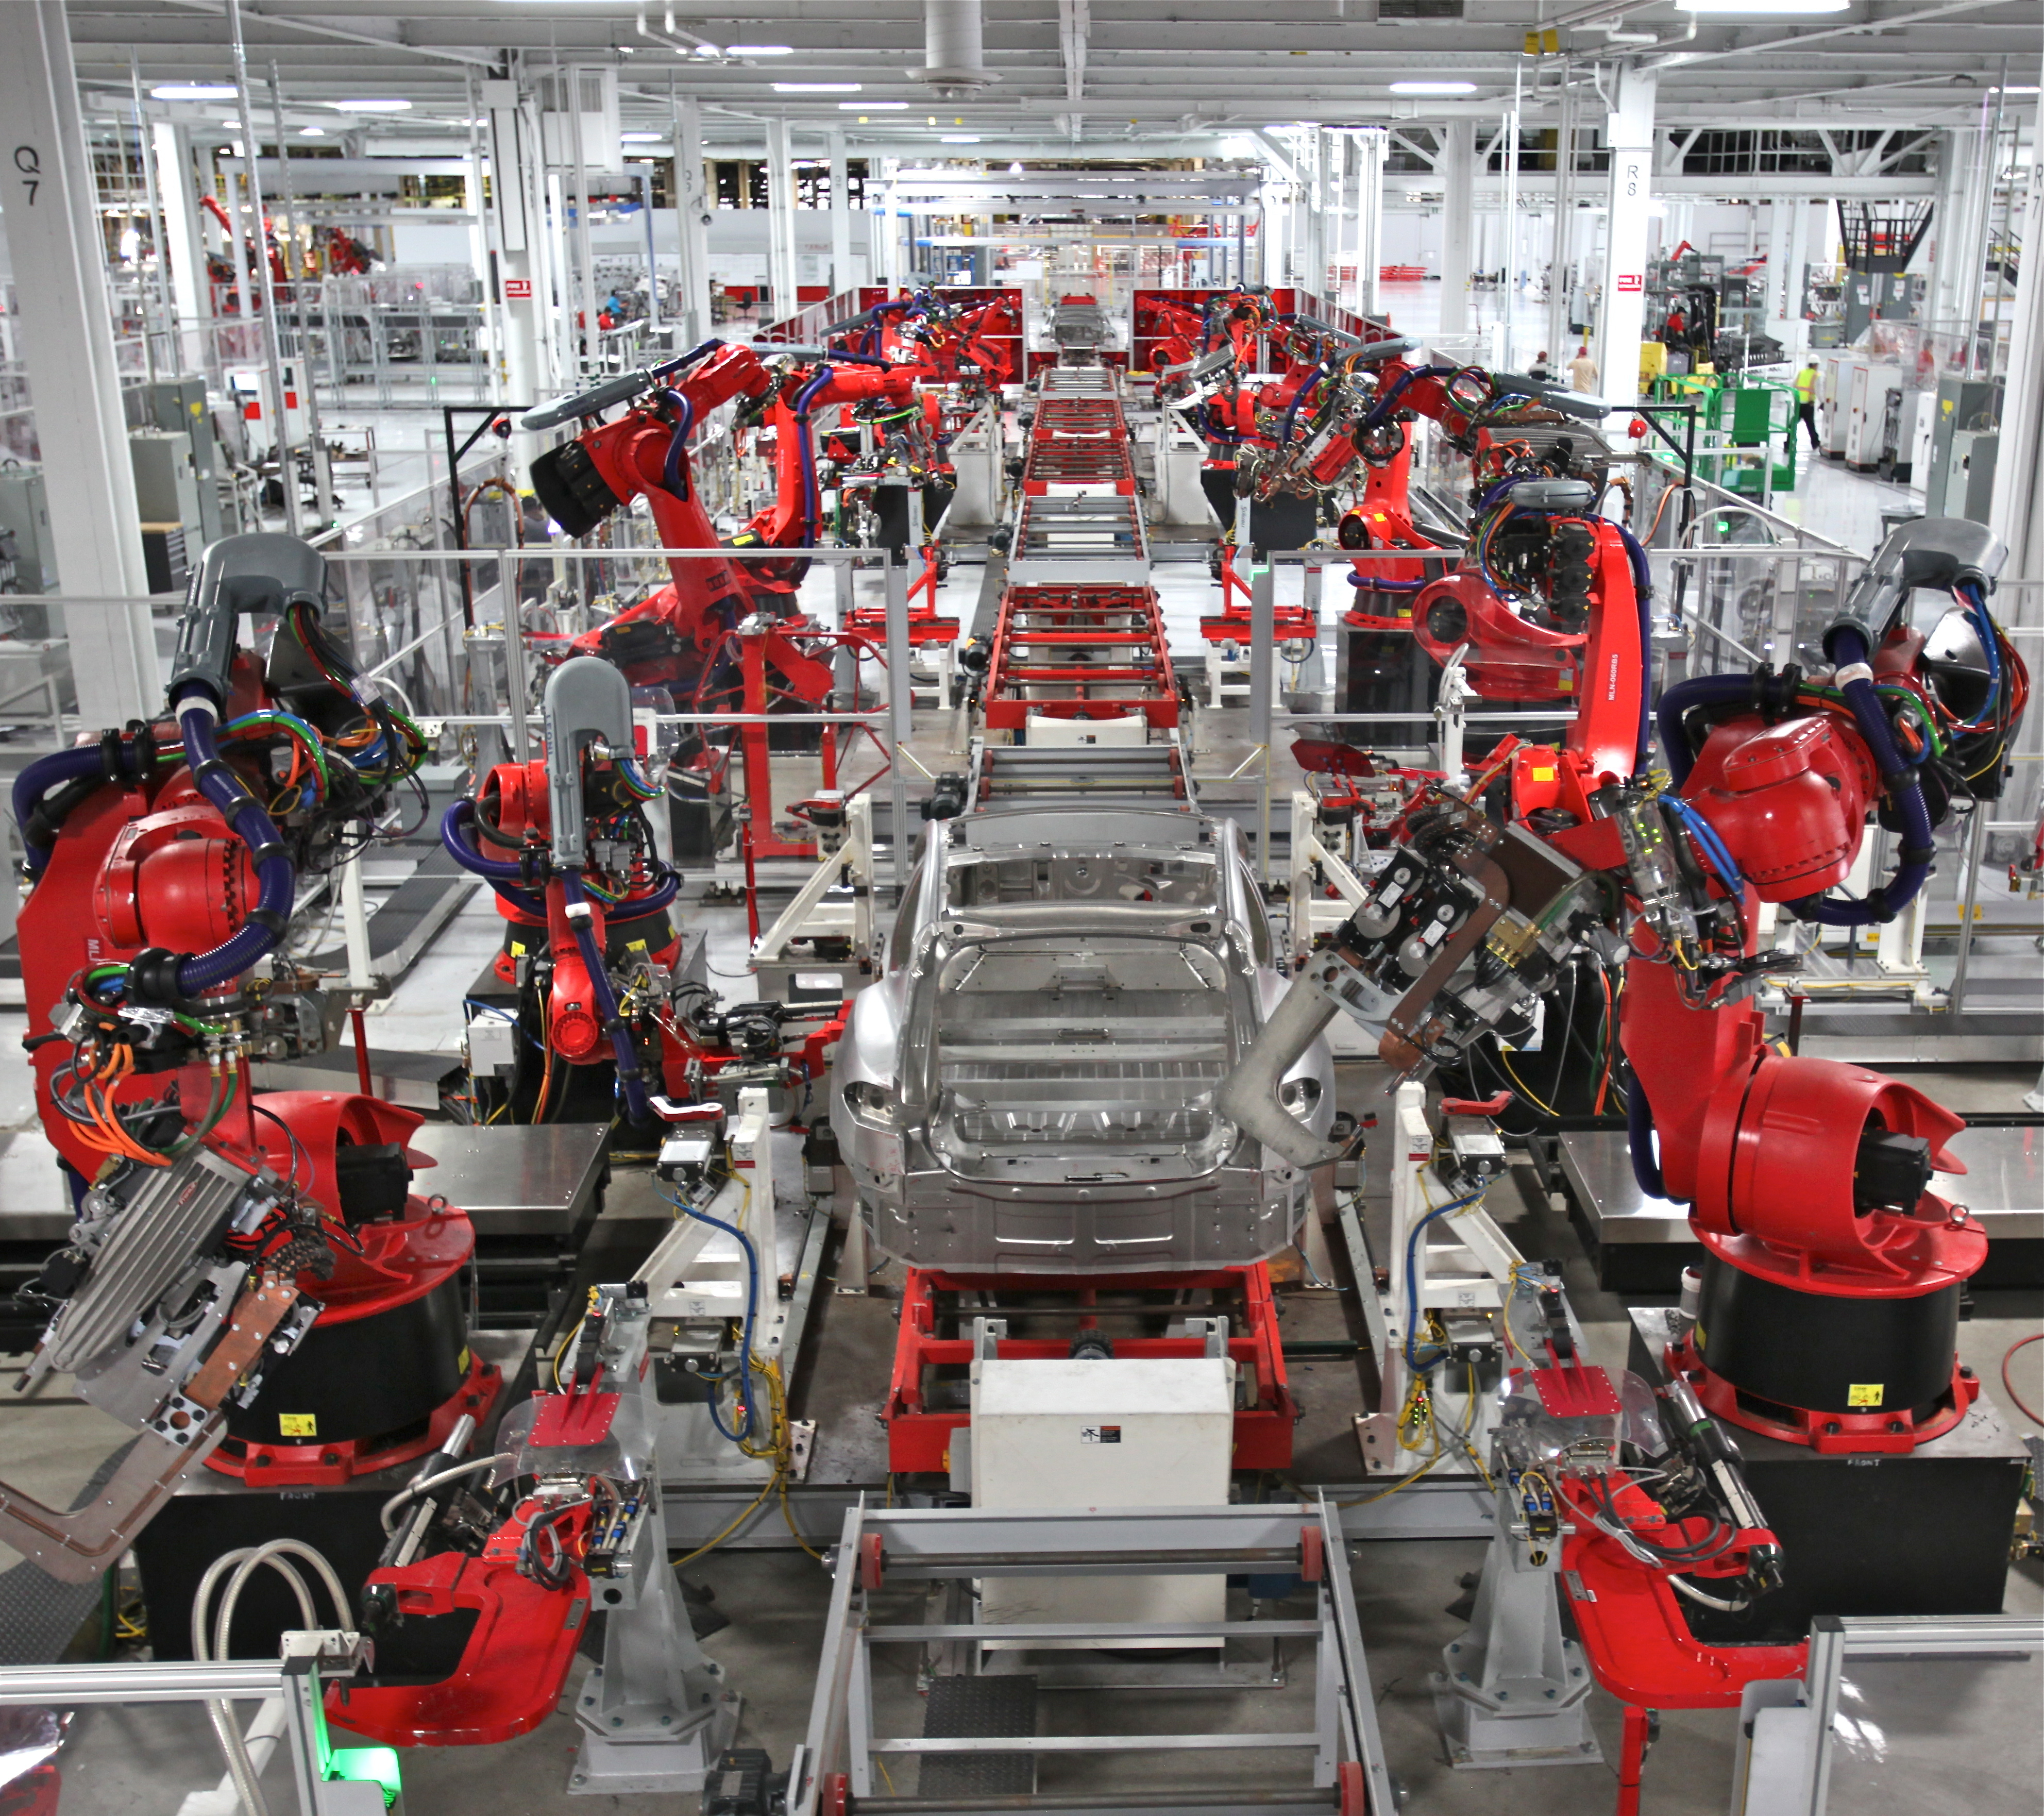 An automated production line in a car factory incorporating robot manipulators.